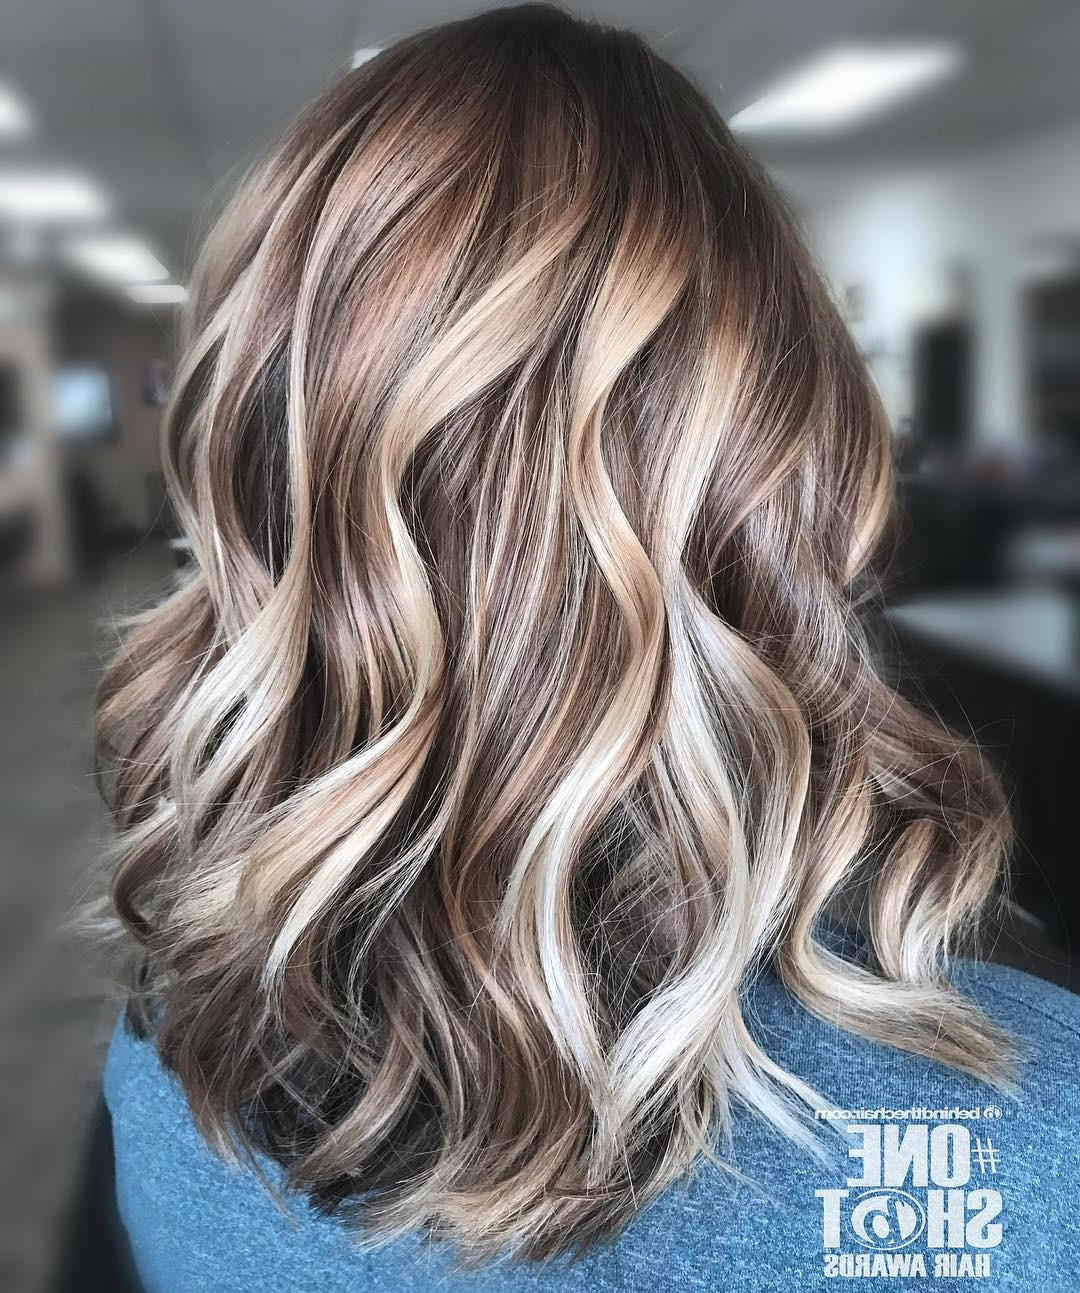 41 Best Balayage Hair Color Ideas 2019 | Hairs (View 10 of 20)